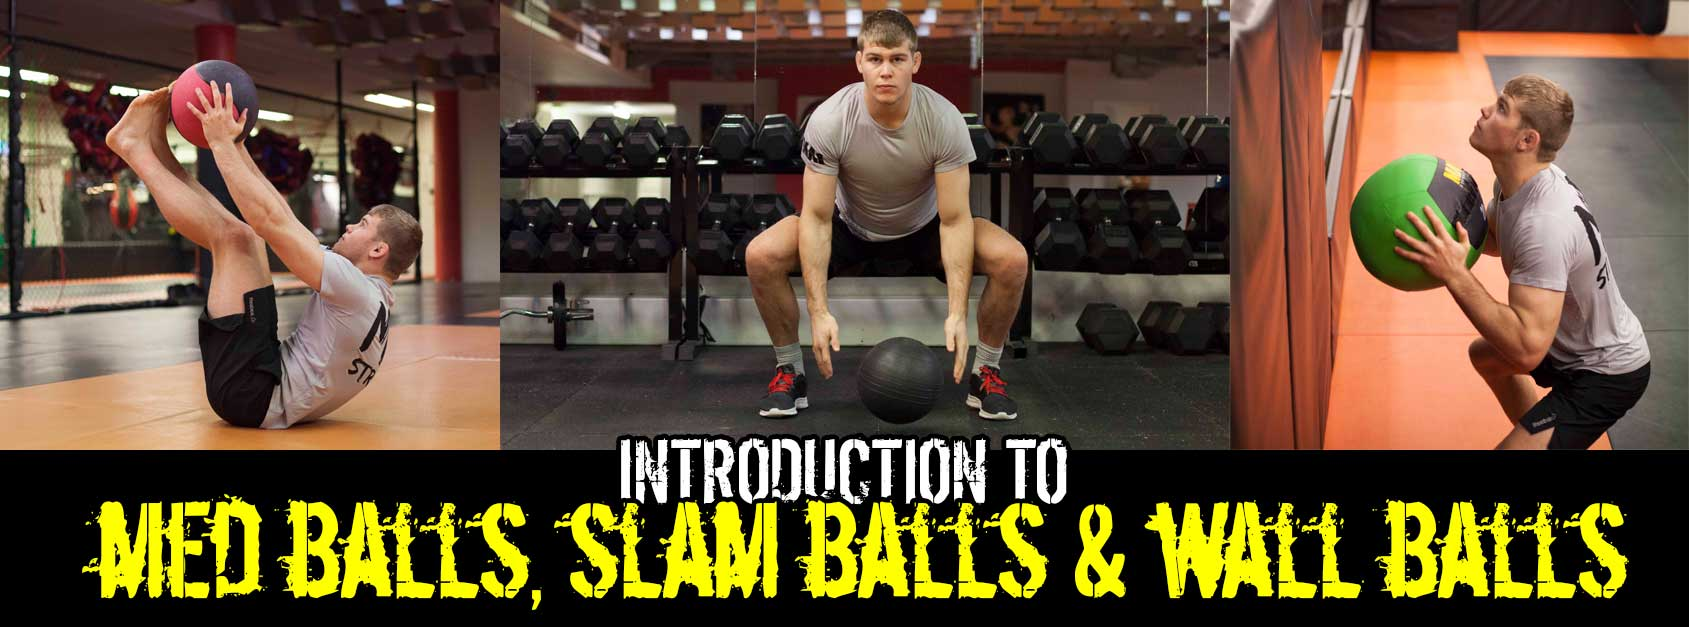 Difference between Medicine Ball, Slam Ball & Wall Balls